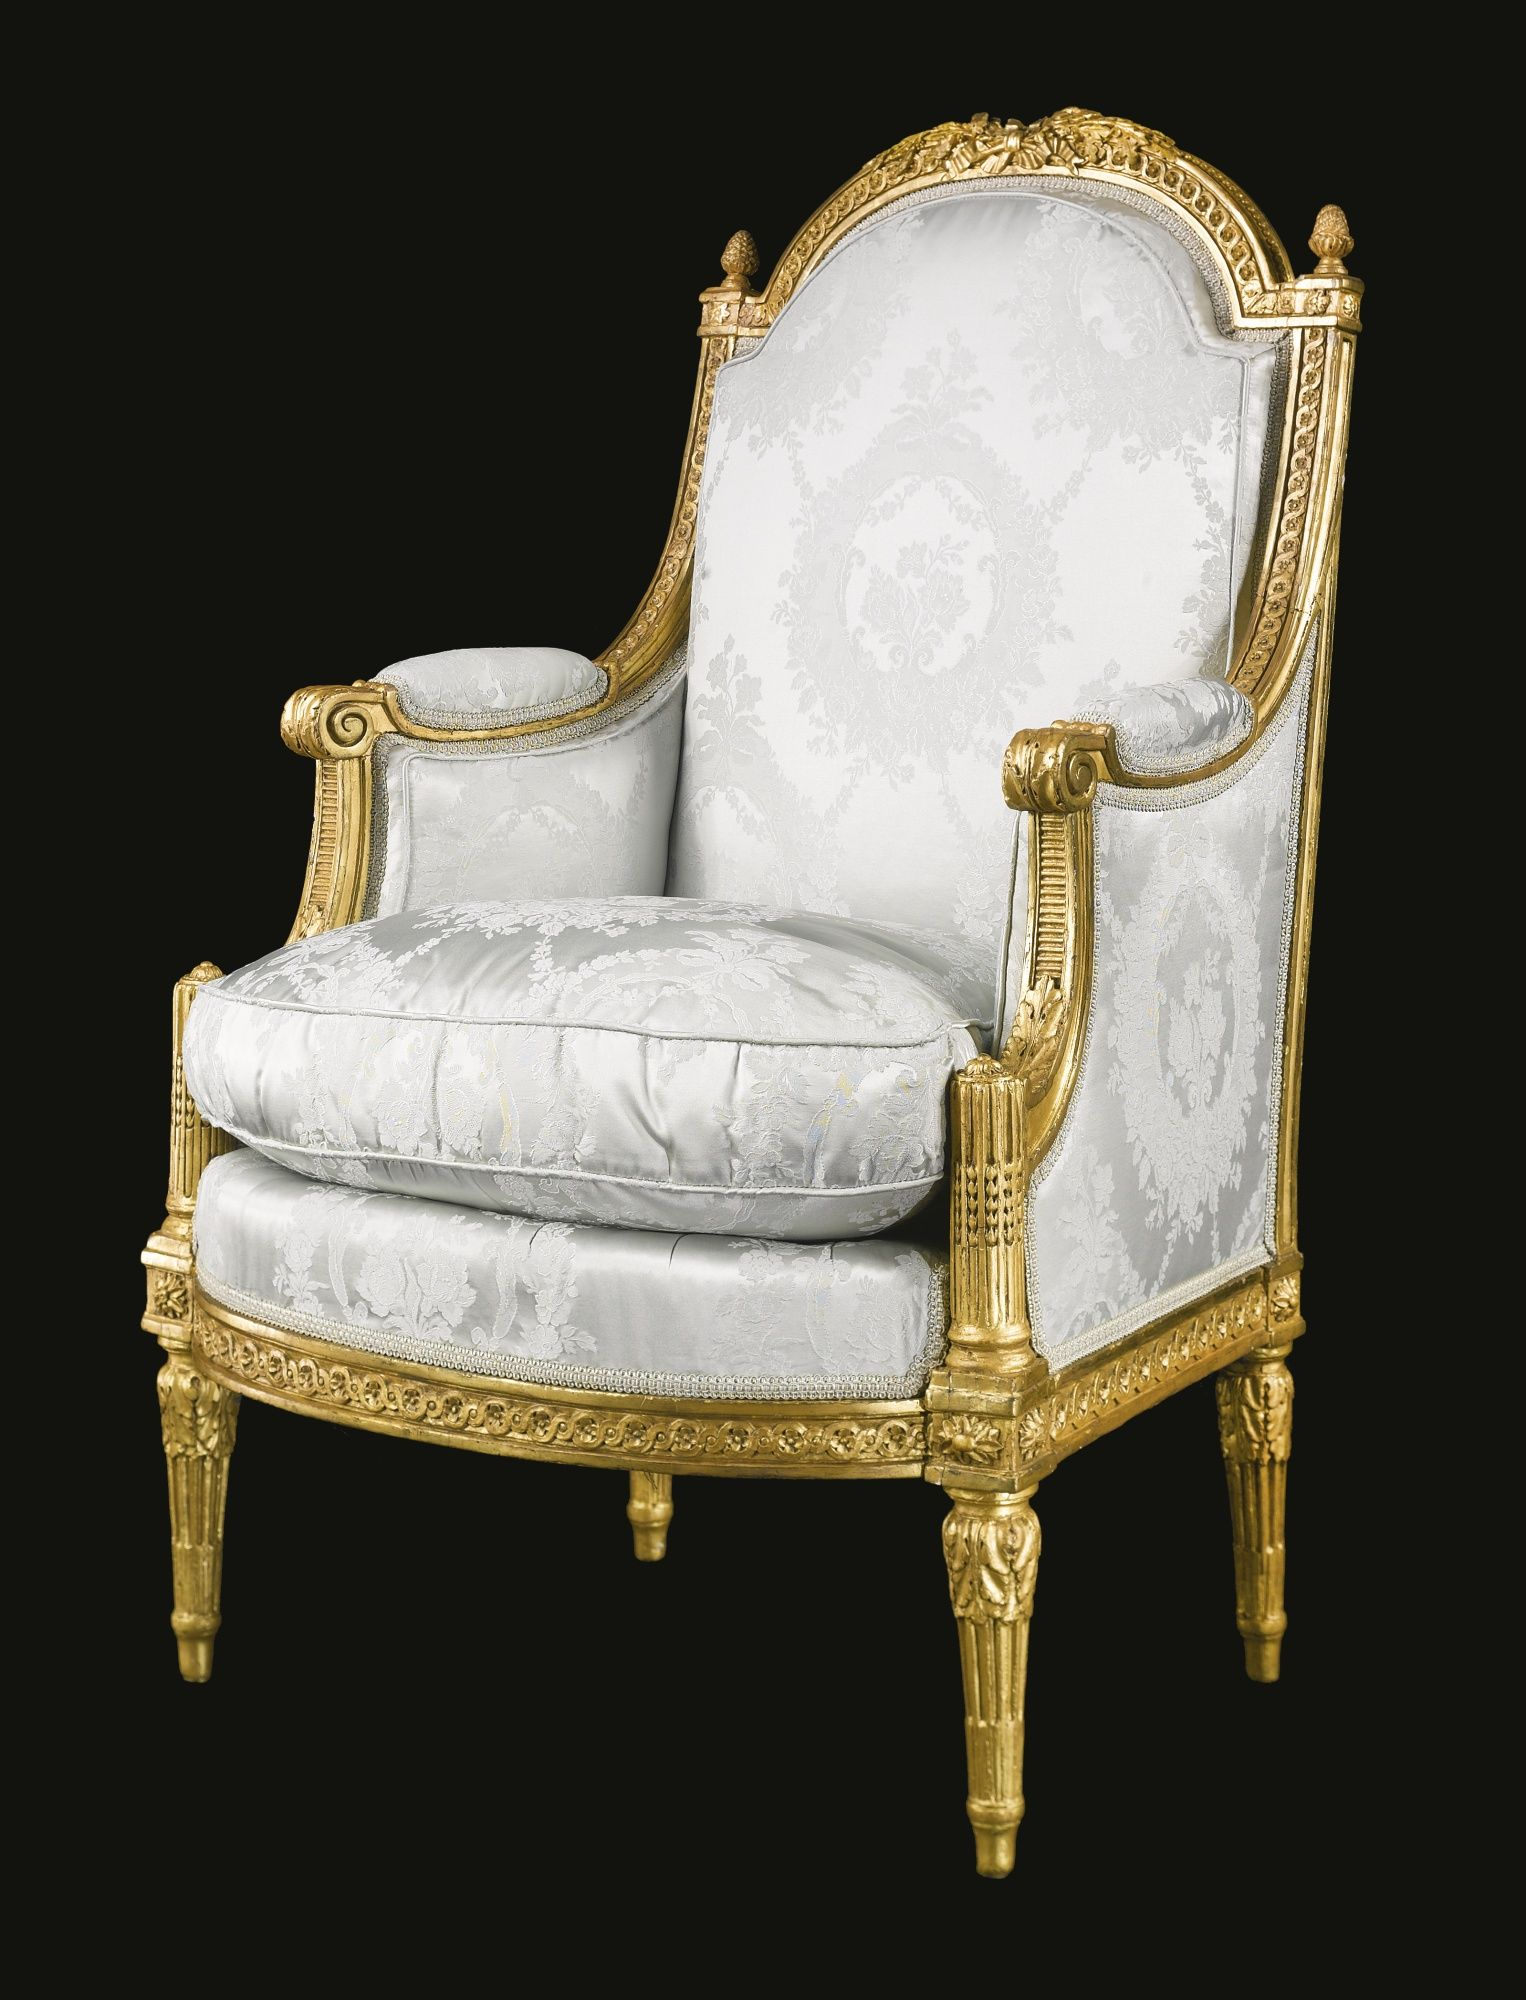 Chaise Longue Antica A Louis Xvi Carved Giltwood Bergère Circa 1785 Stamped